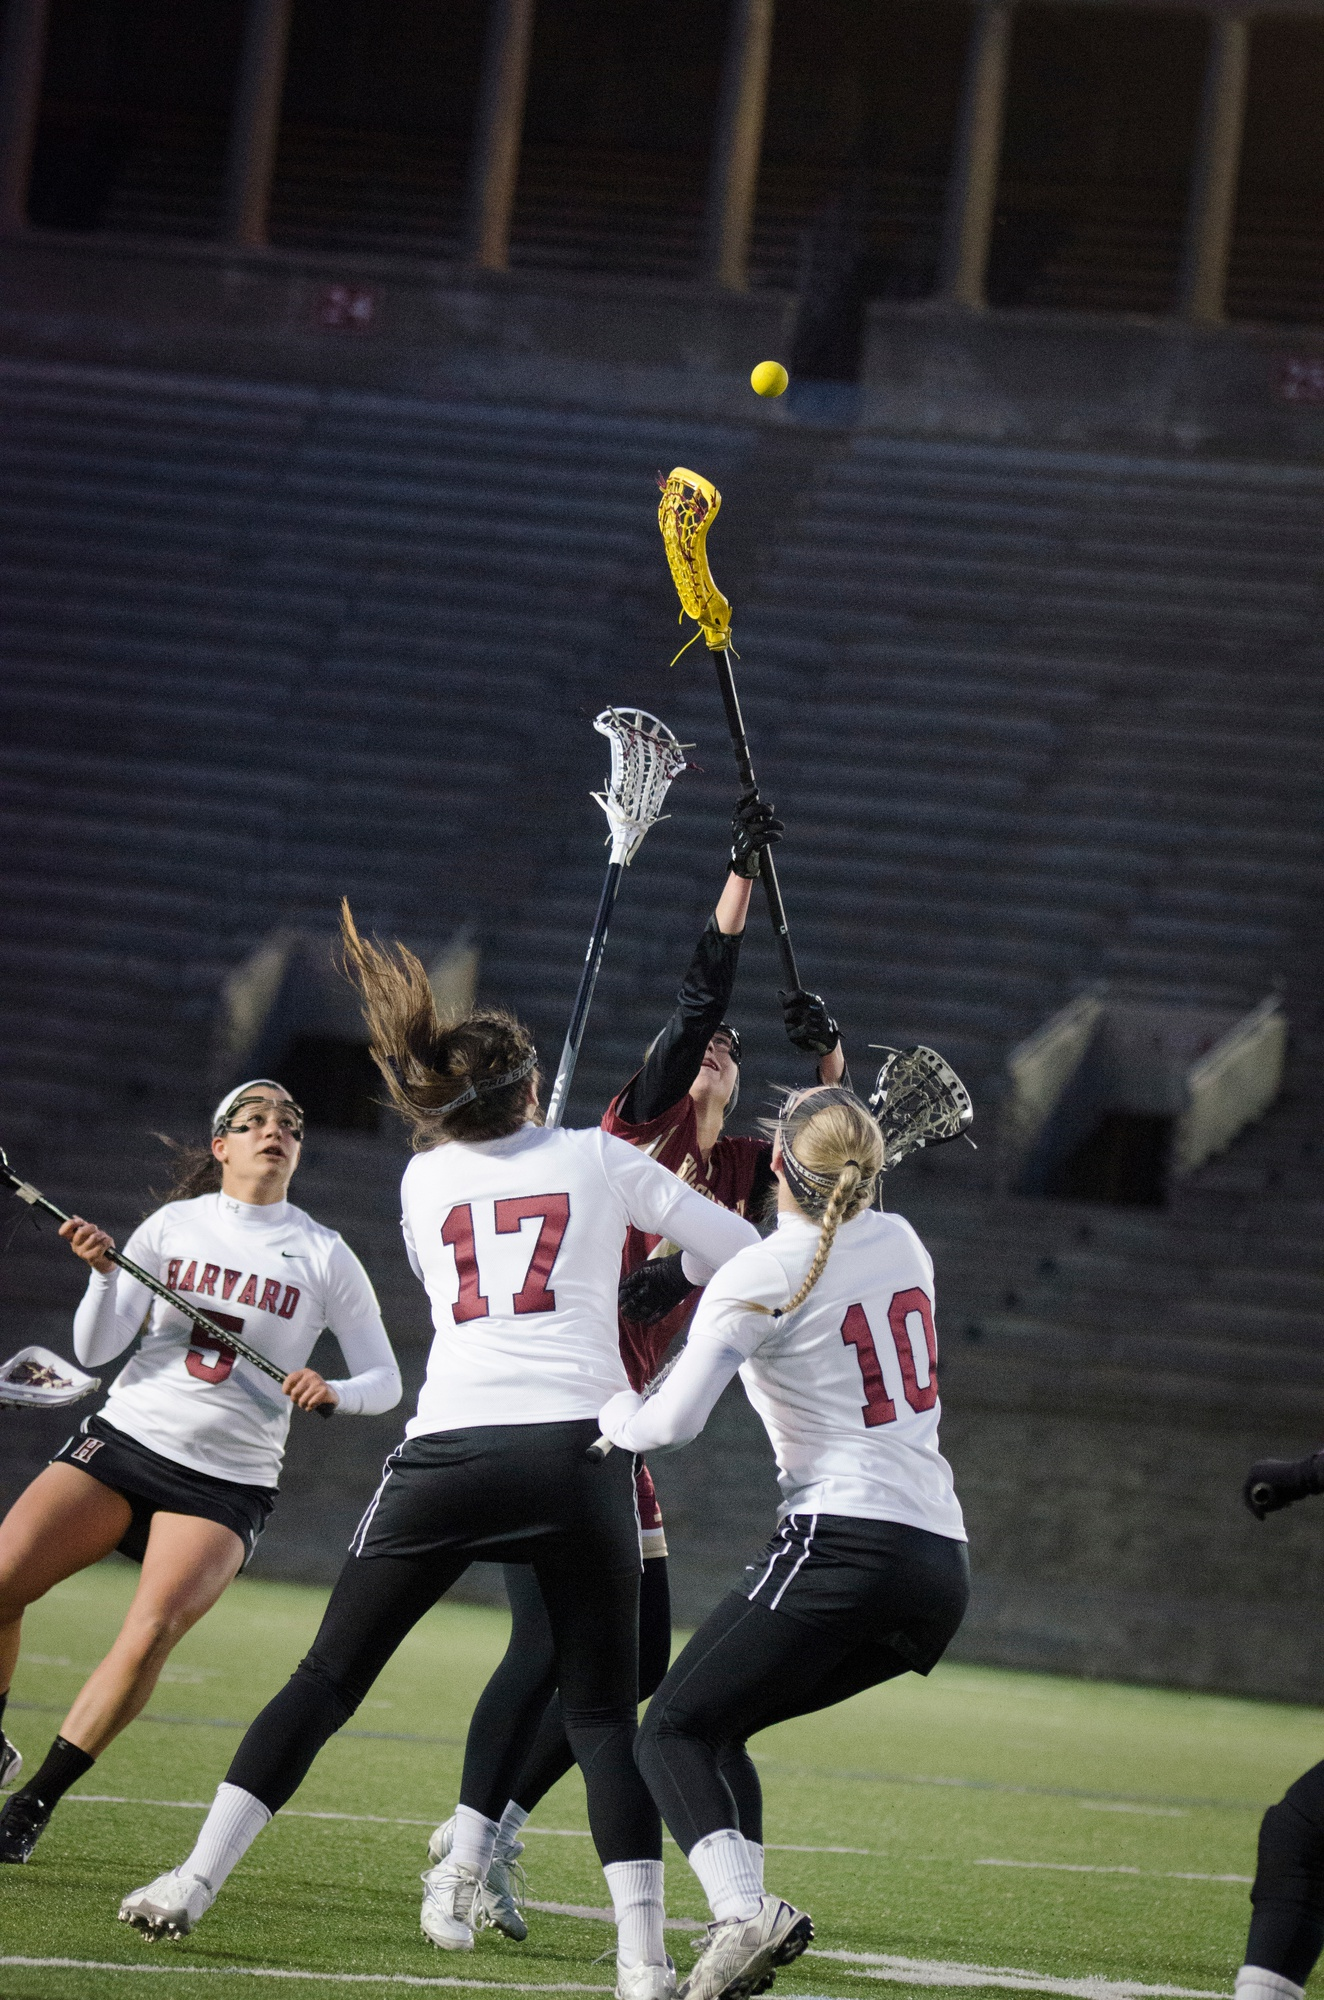 Sophomore defender Tory Waldstein, freshman defender Marina Burke, and sophomore defender Mia Capone battle for the ball in a contest against crosstown rival Boston University. Harvard prevailed, 11-6.